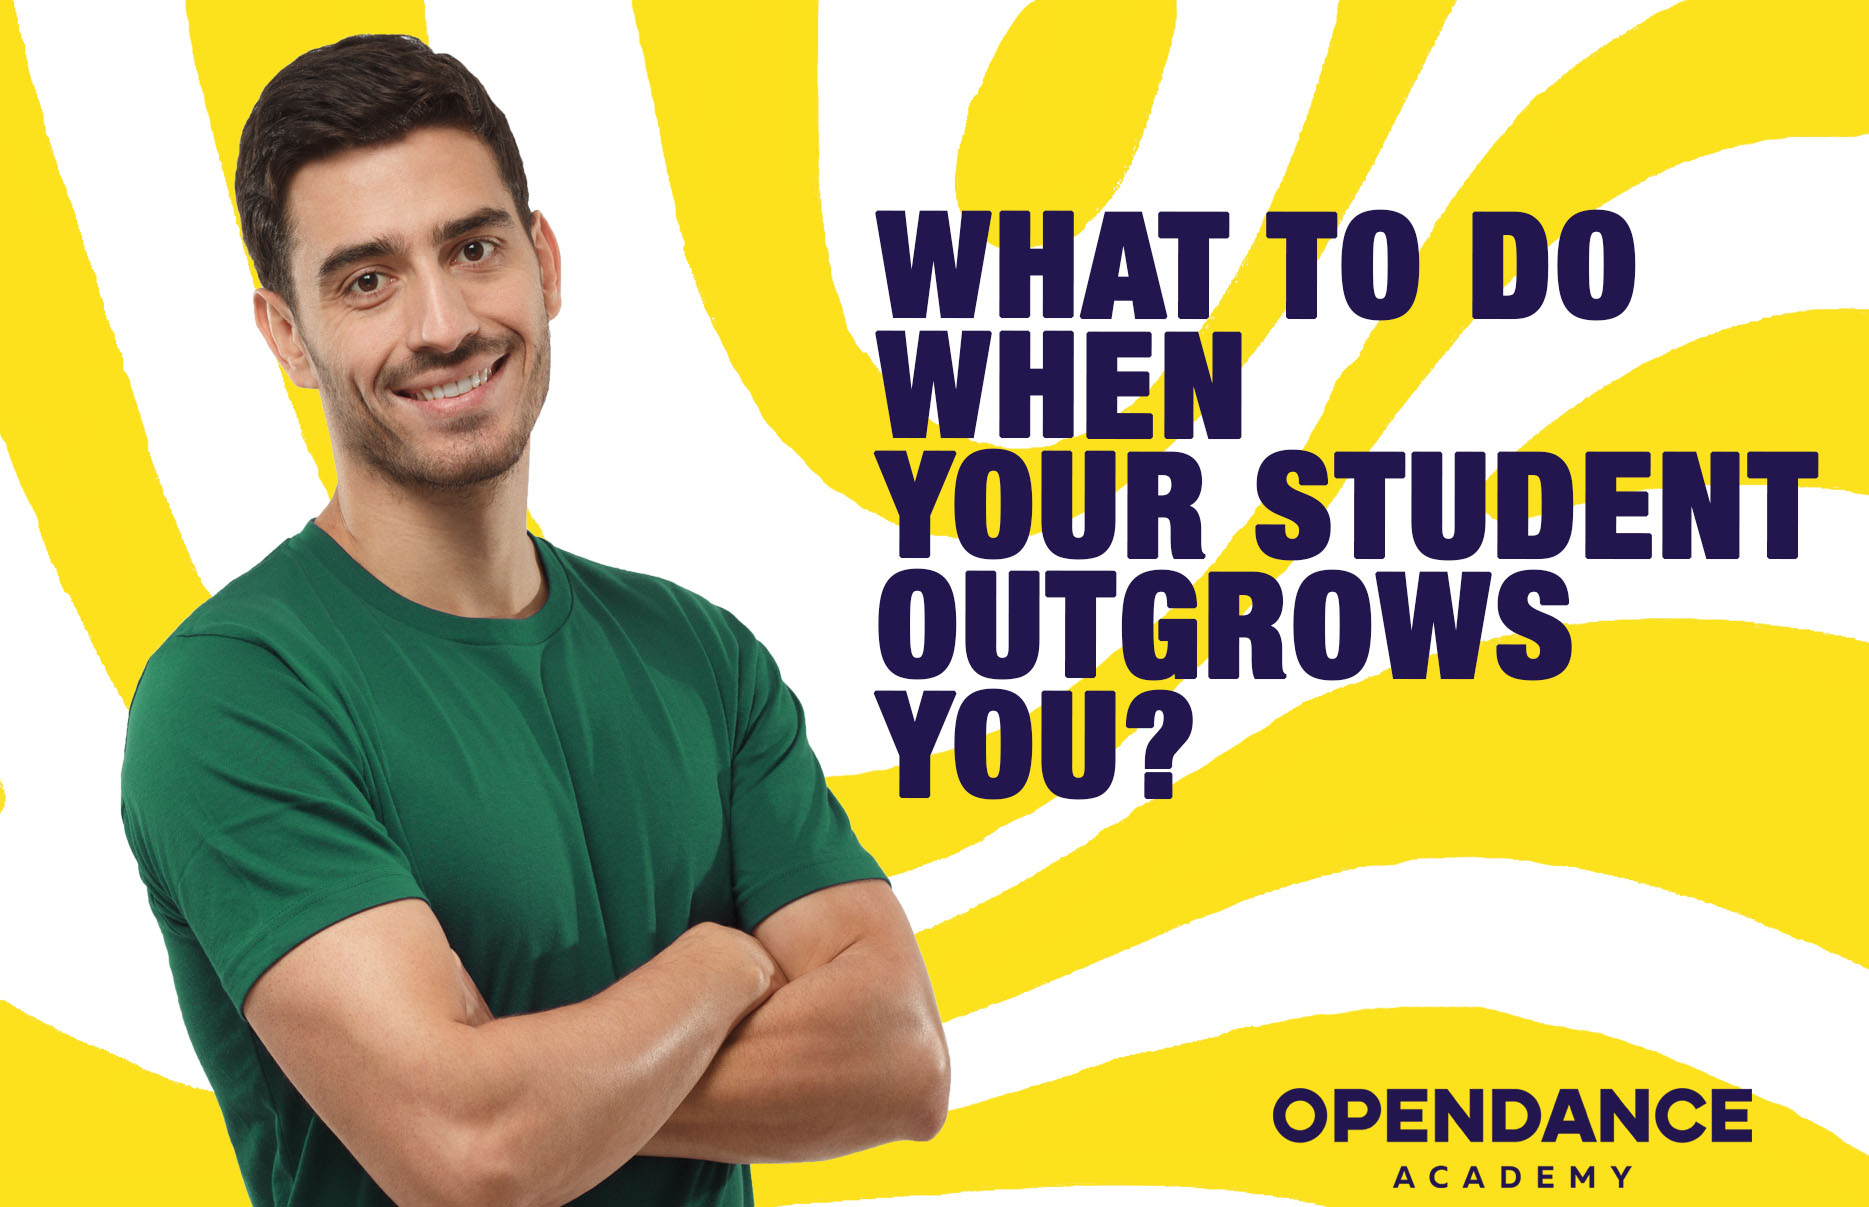 What To Do When Your Student Outgrows You?